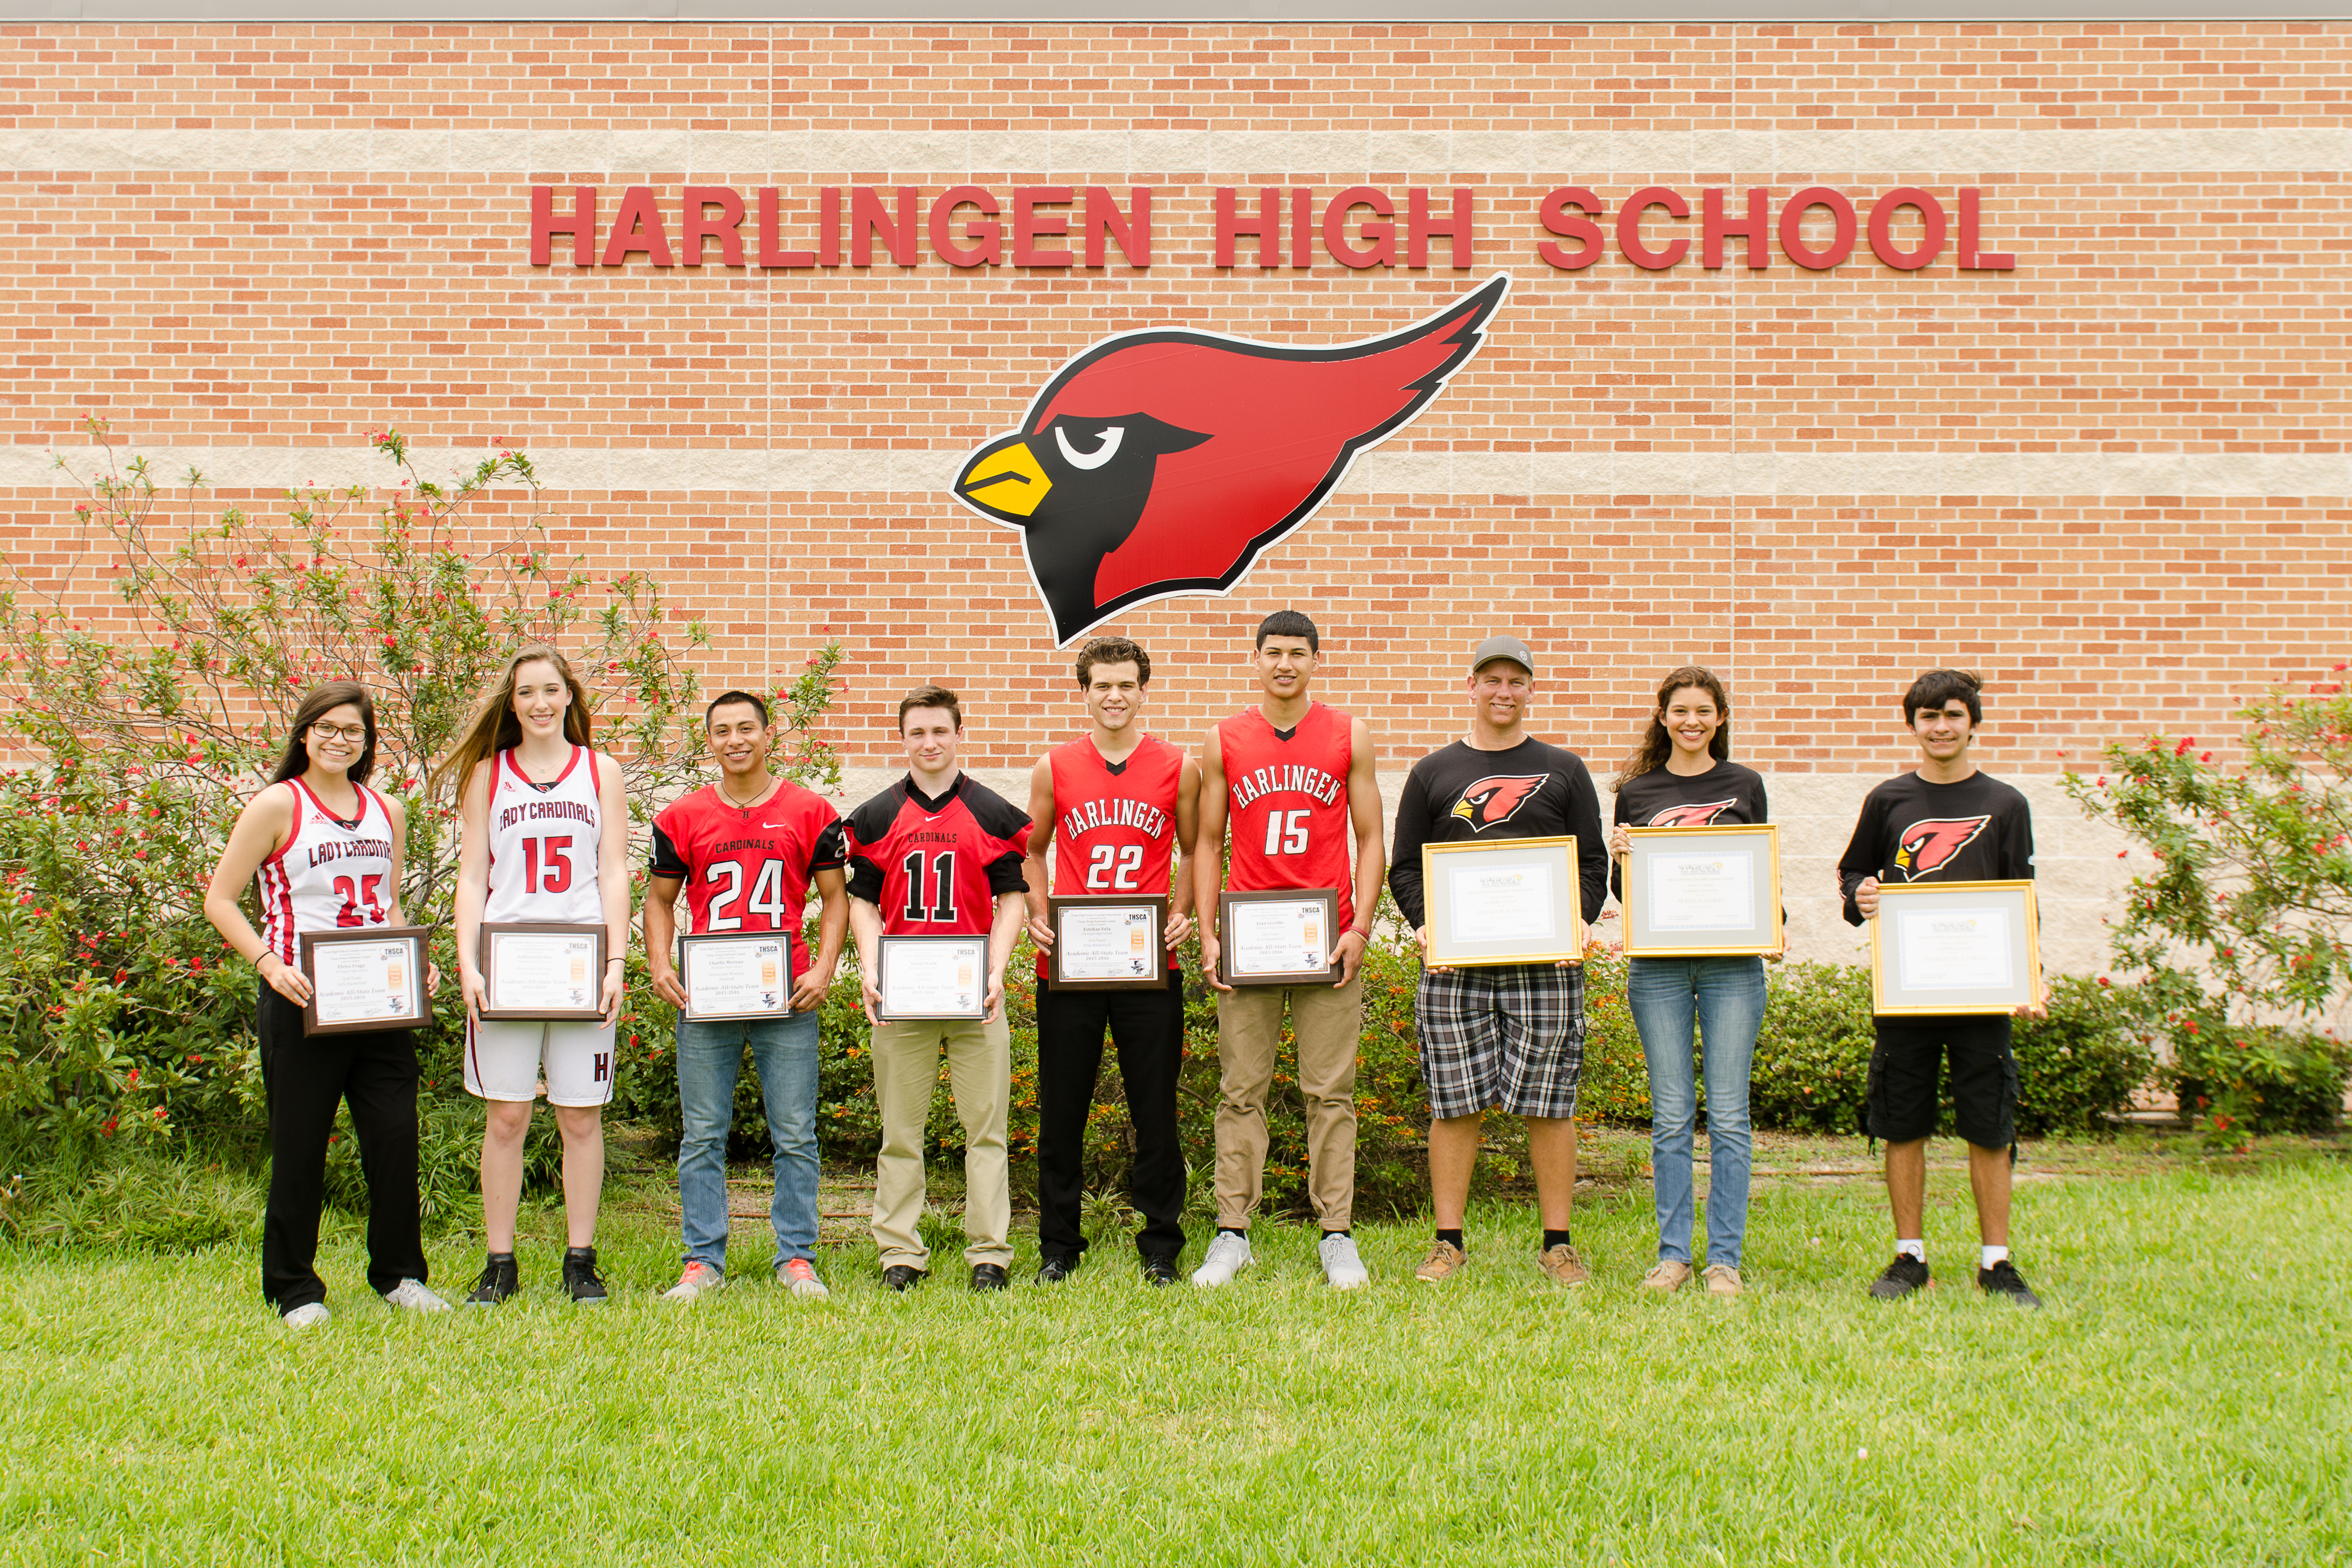 Cardinals awarded for academic and athletic success